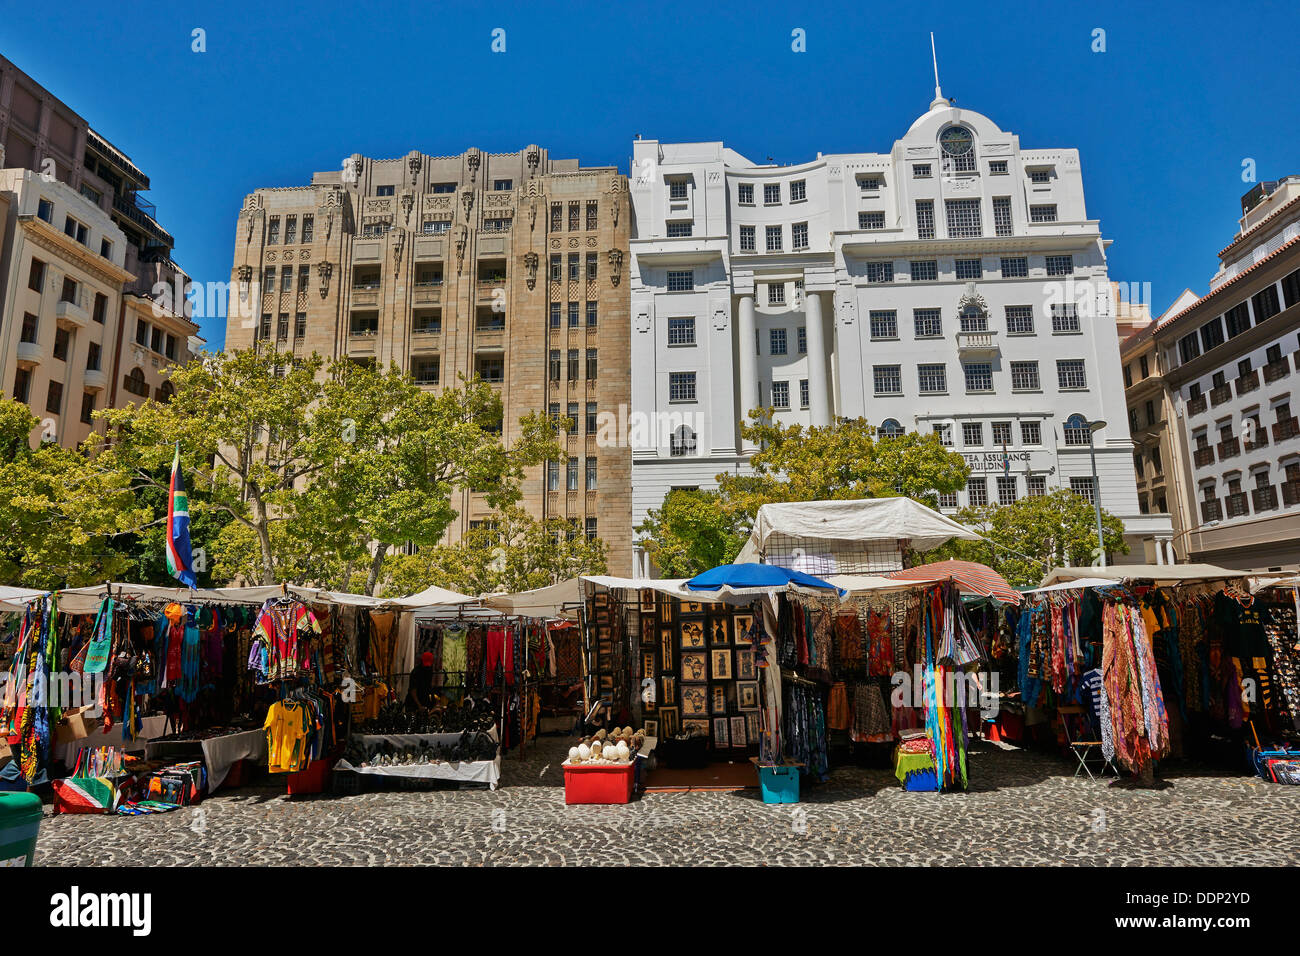 Market stalls, Greenmarket Square, Cape Town, Western Cape, South Africa, Africa Stock Photo